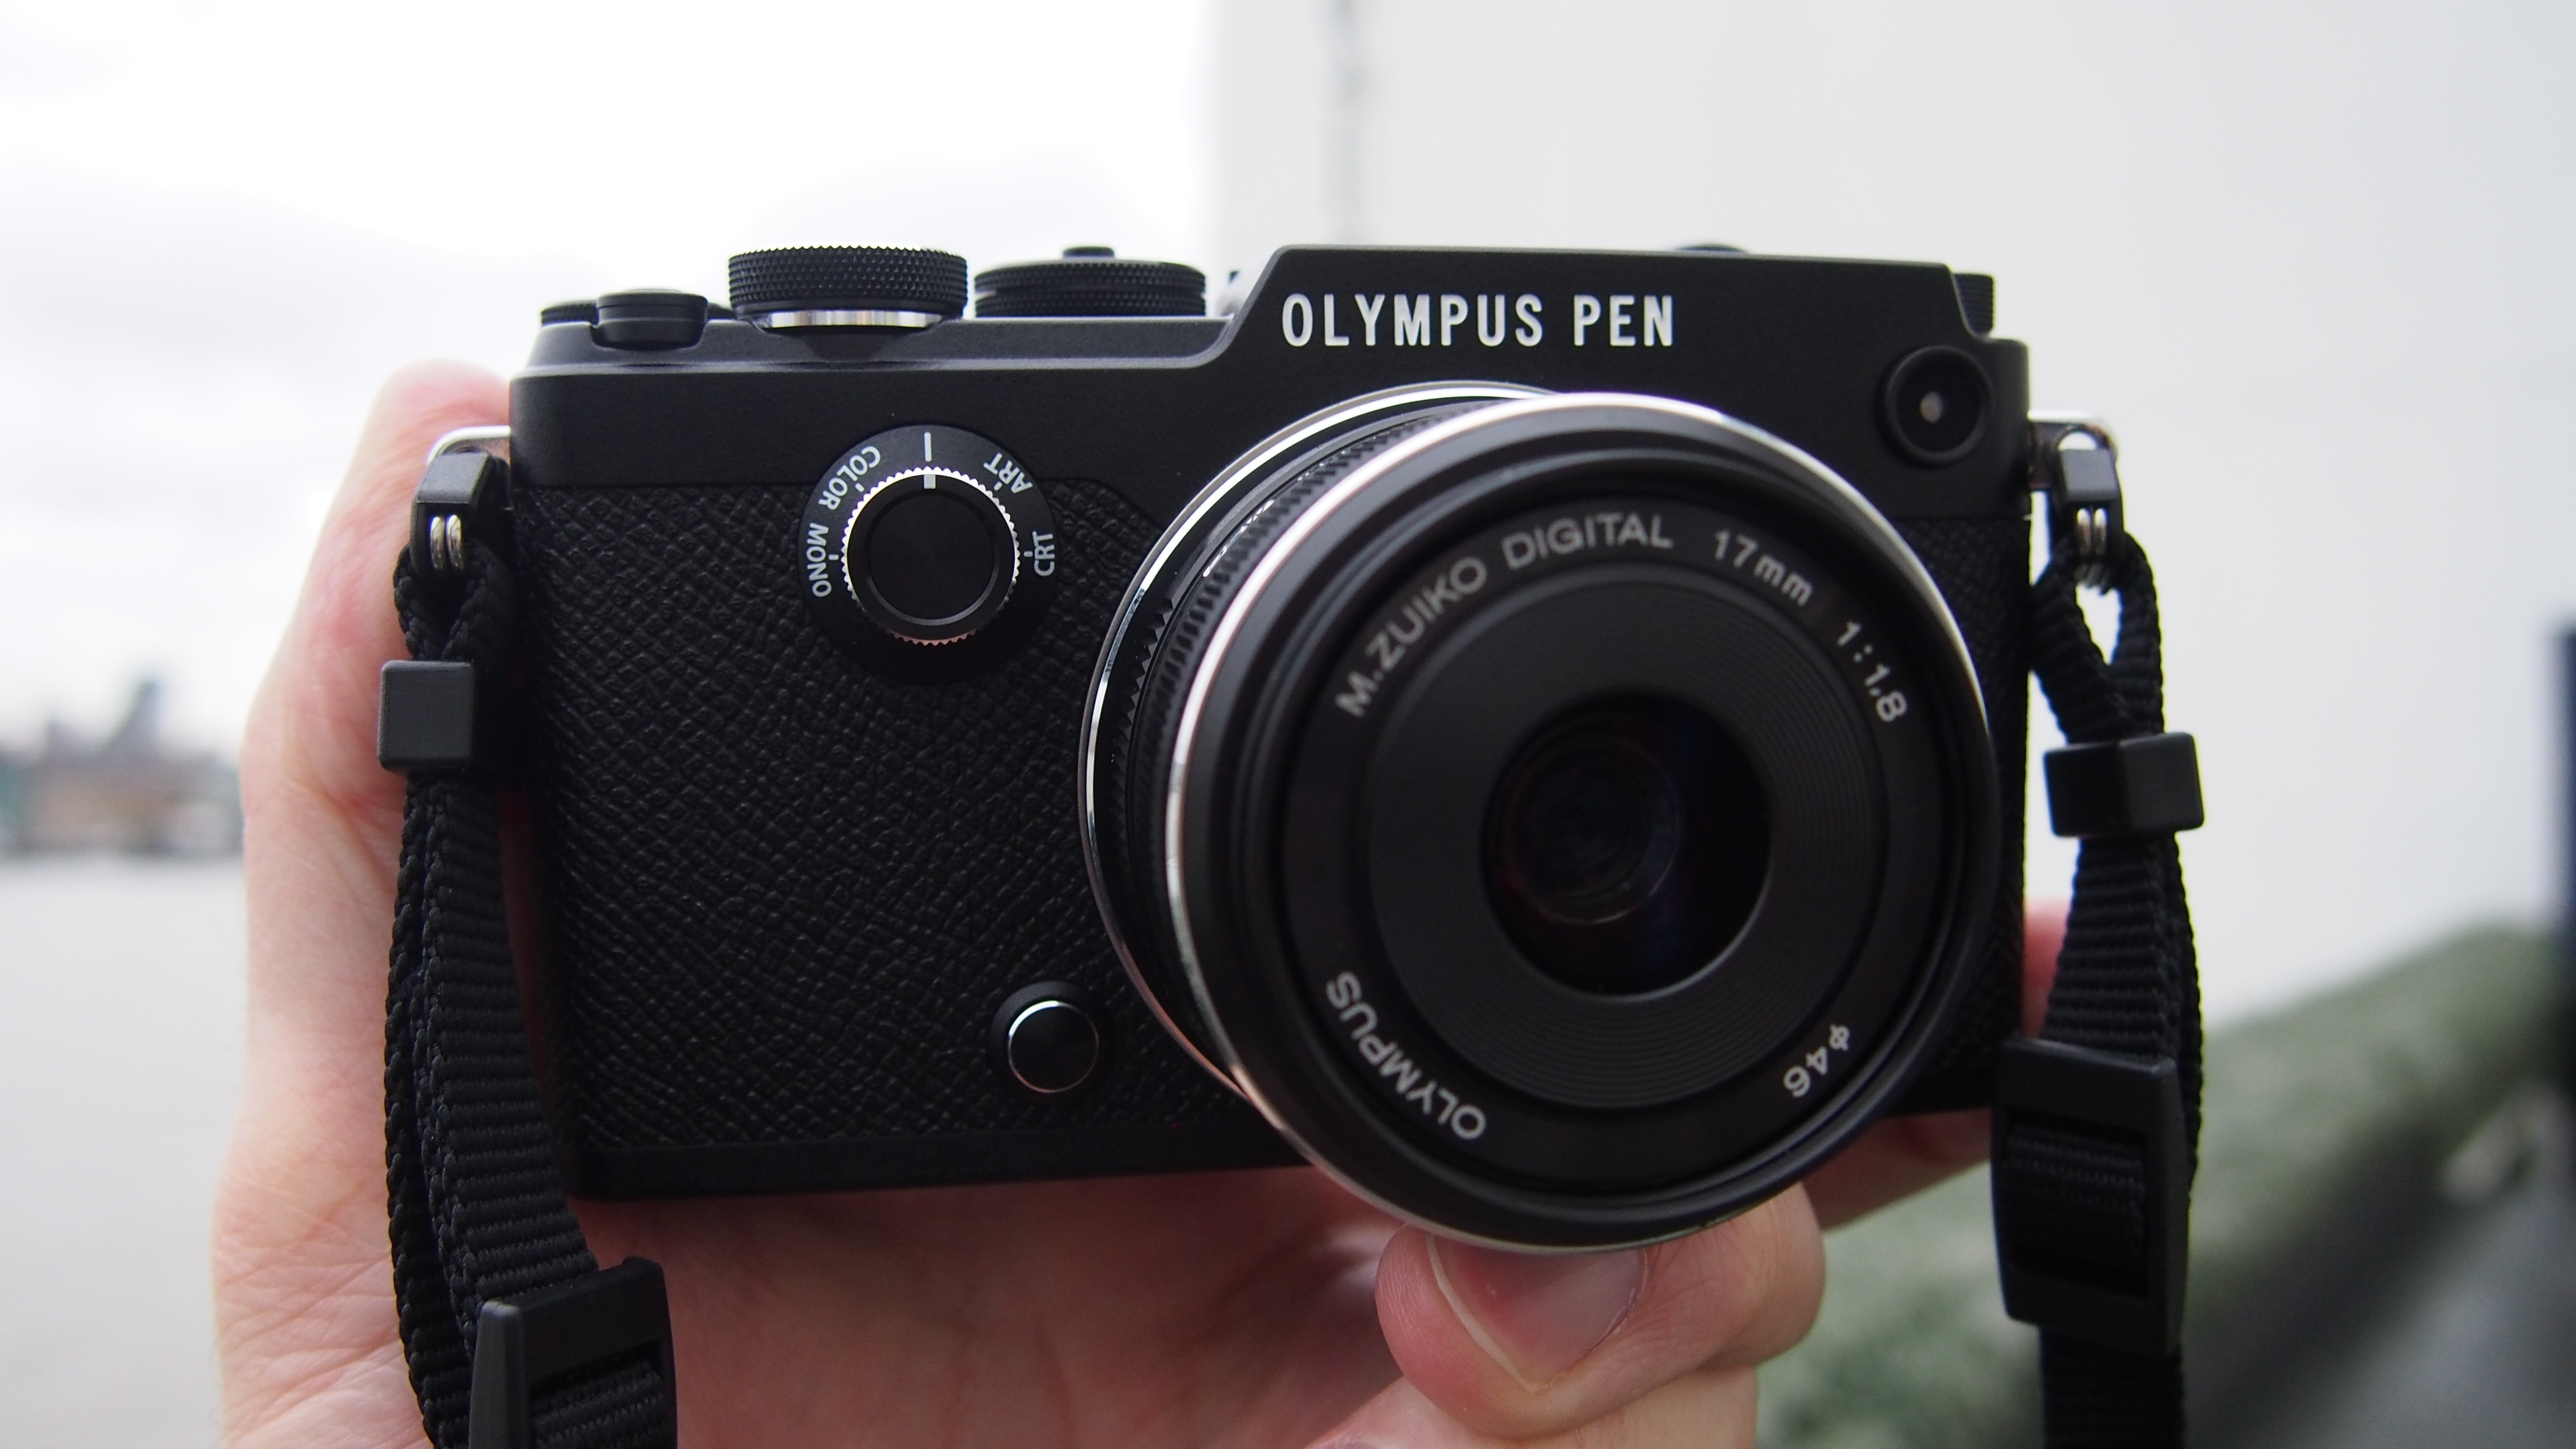 olympus pen f review hands on with csc retro stunner expert reviews. Black Bedroom Furniture Sets. Home Design Ideas